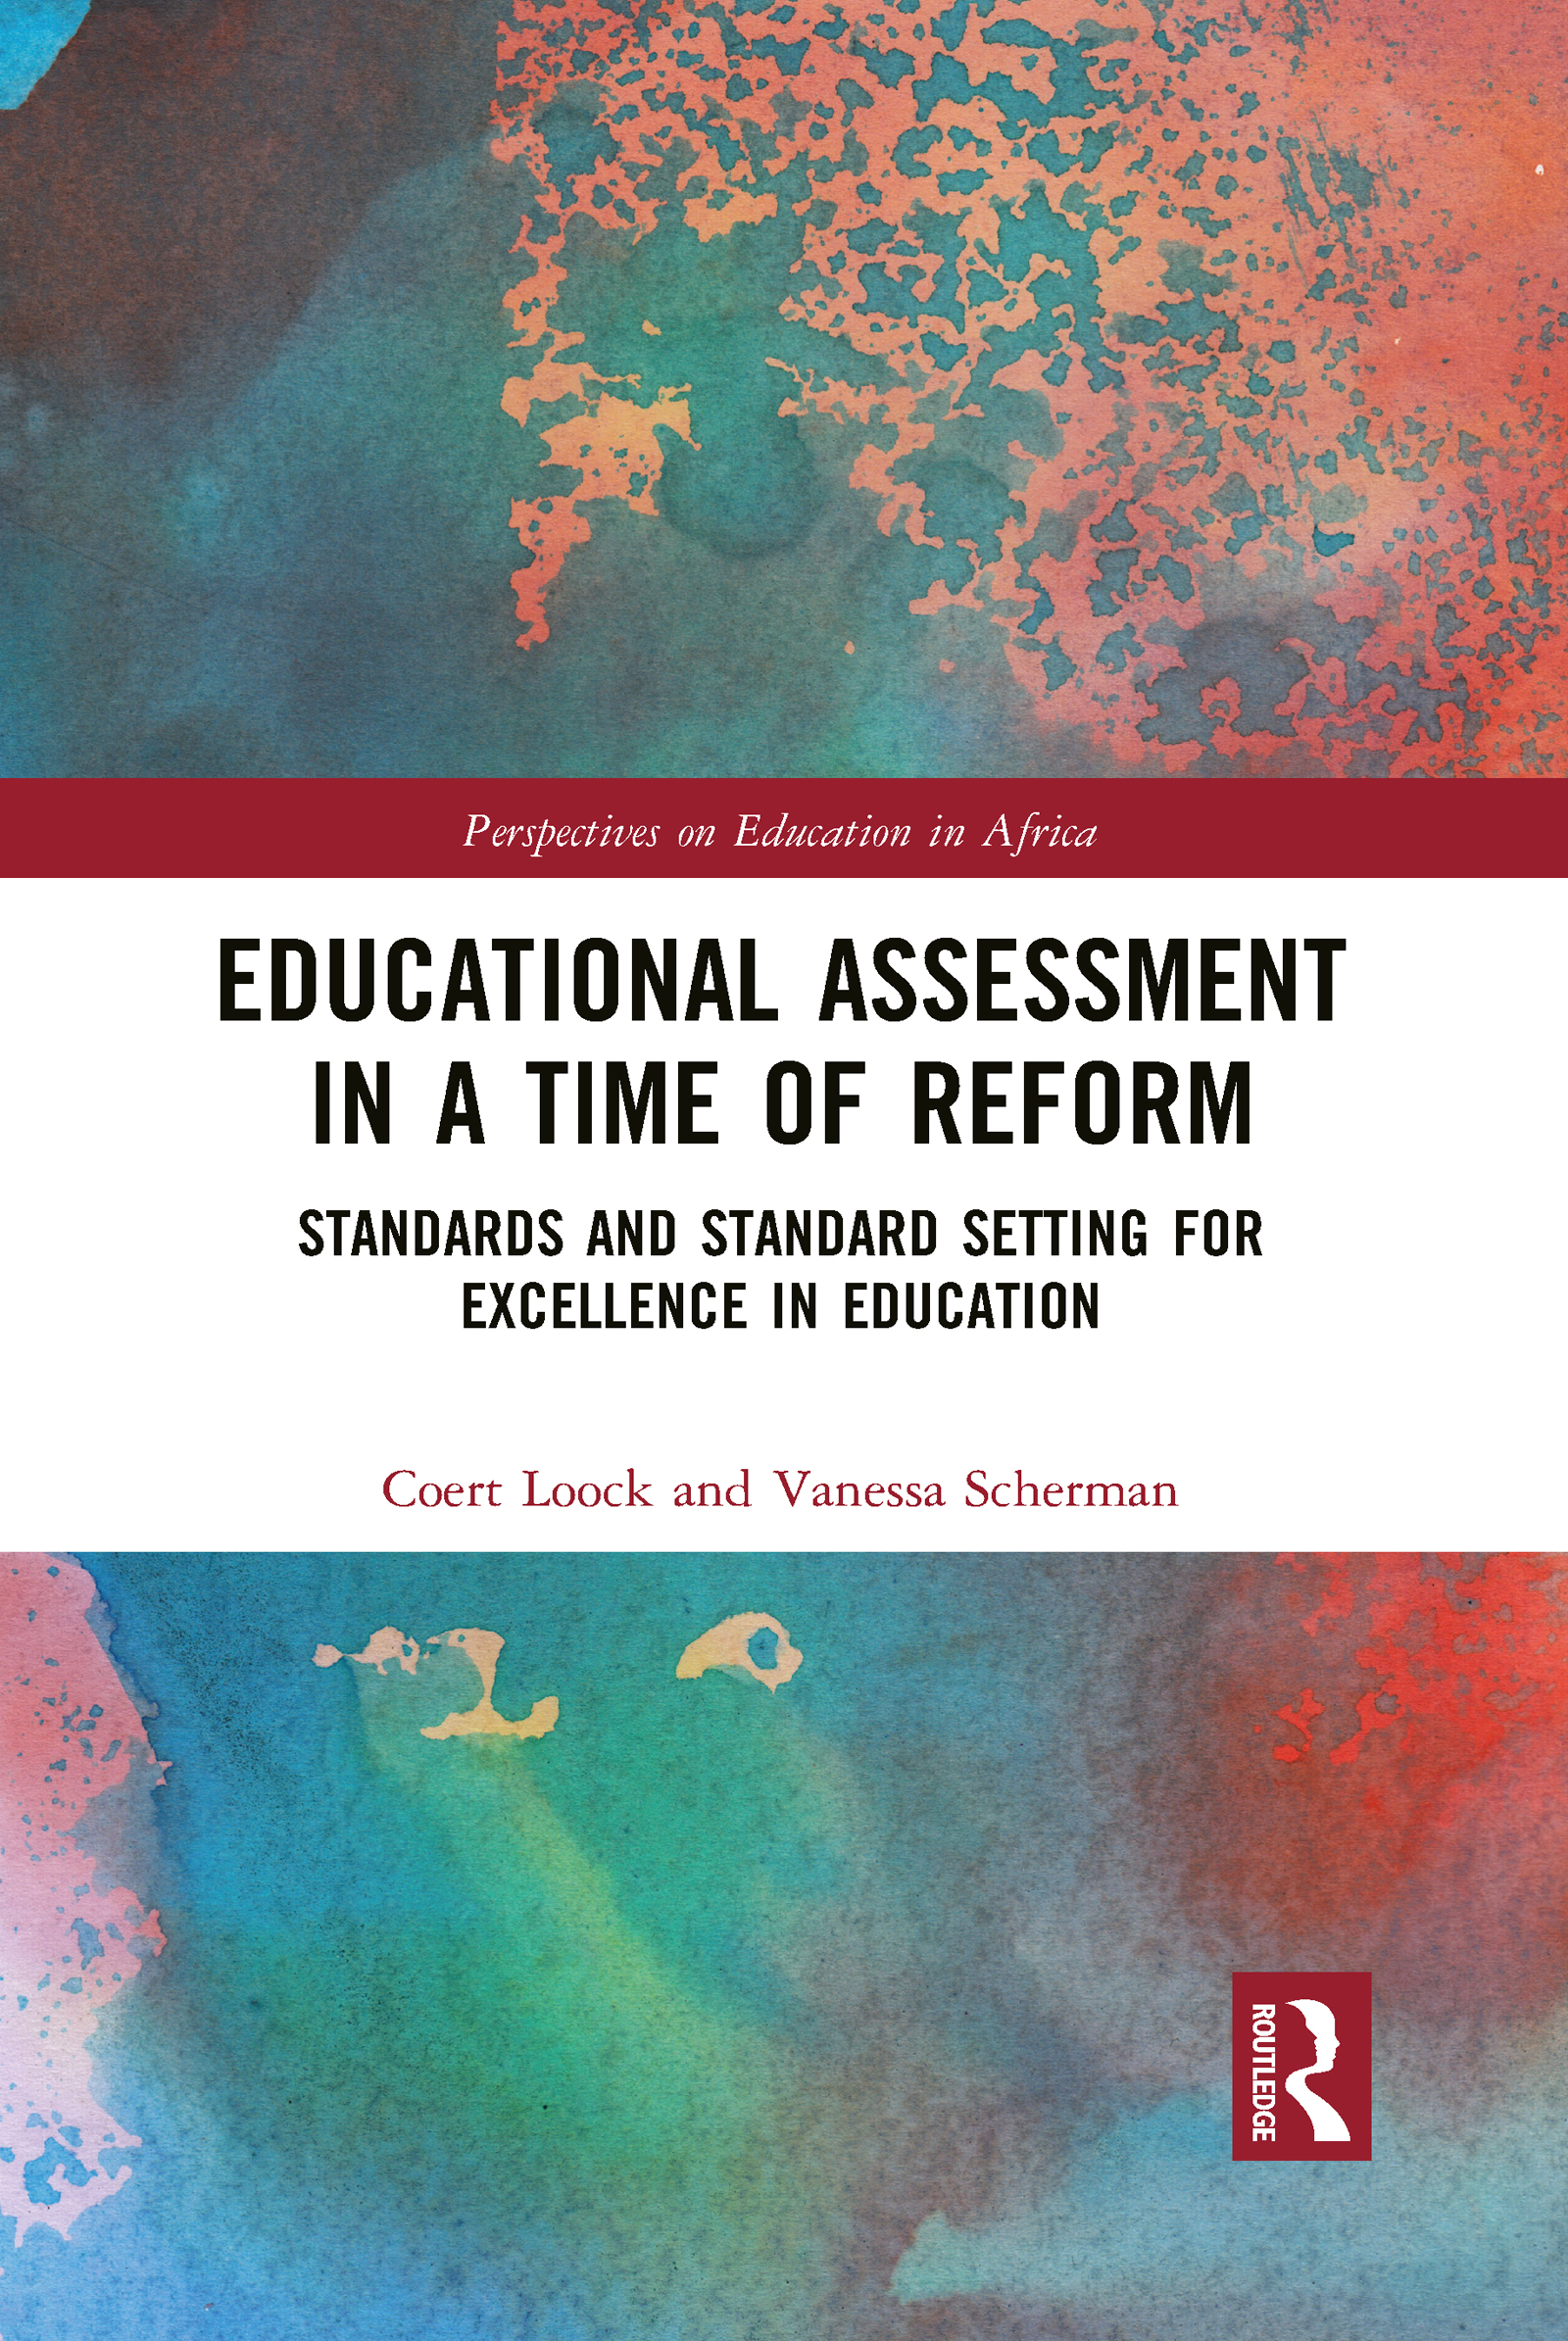 Educational Assessment in a Time of Reform